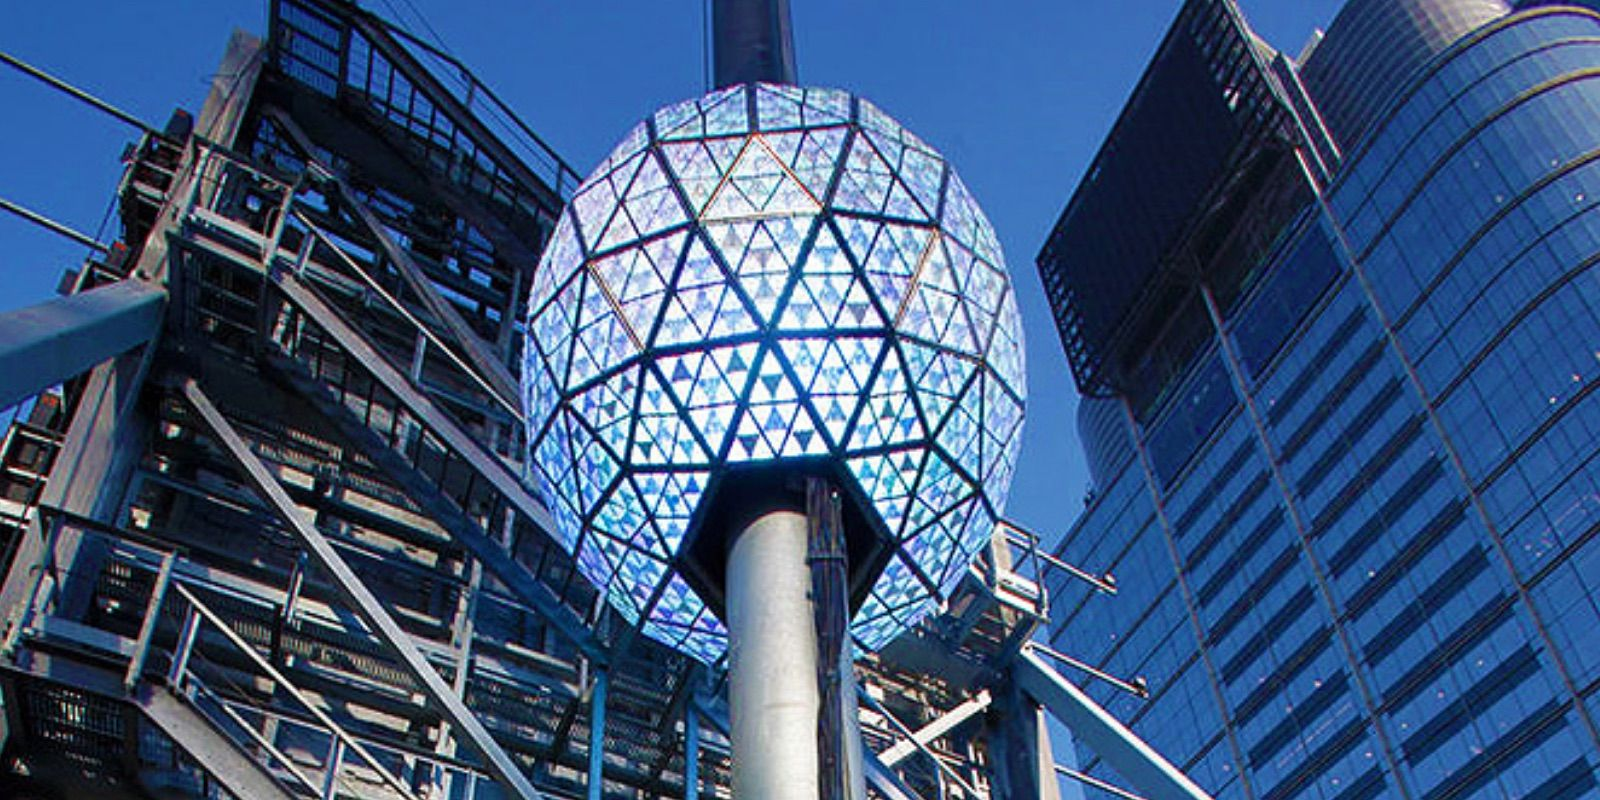 The ball will drop this year in Times Square but no crowds allowed